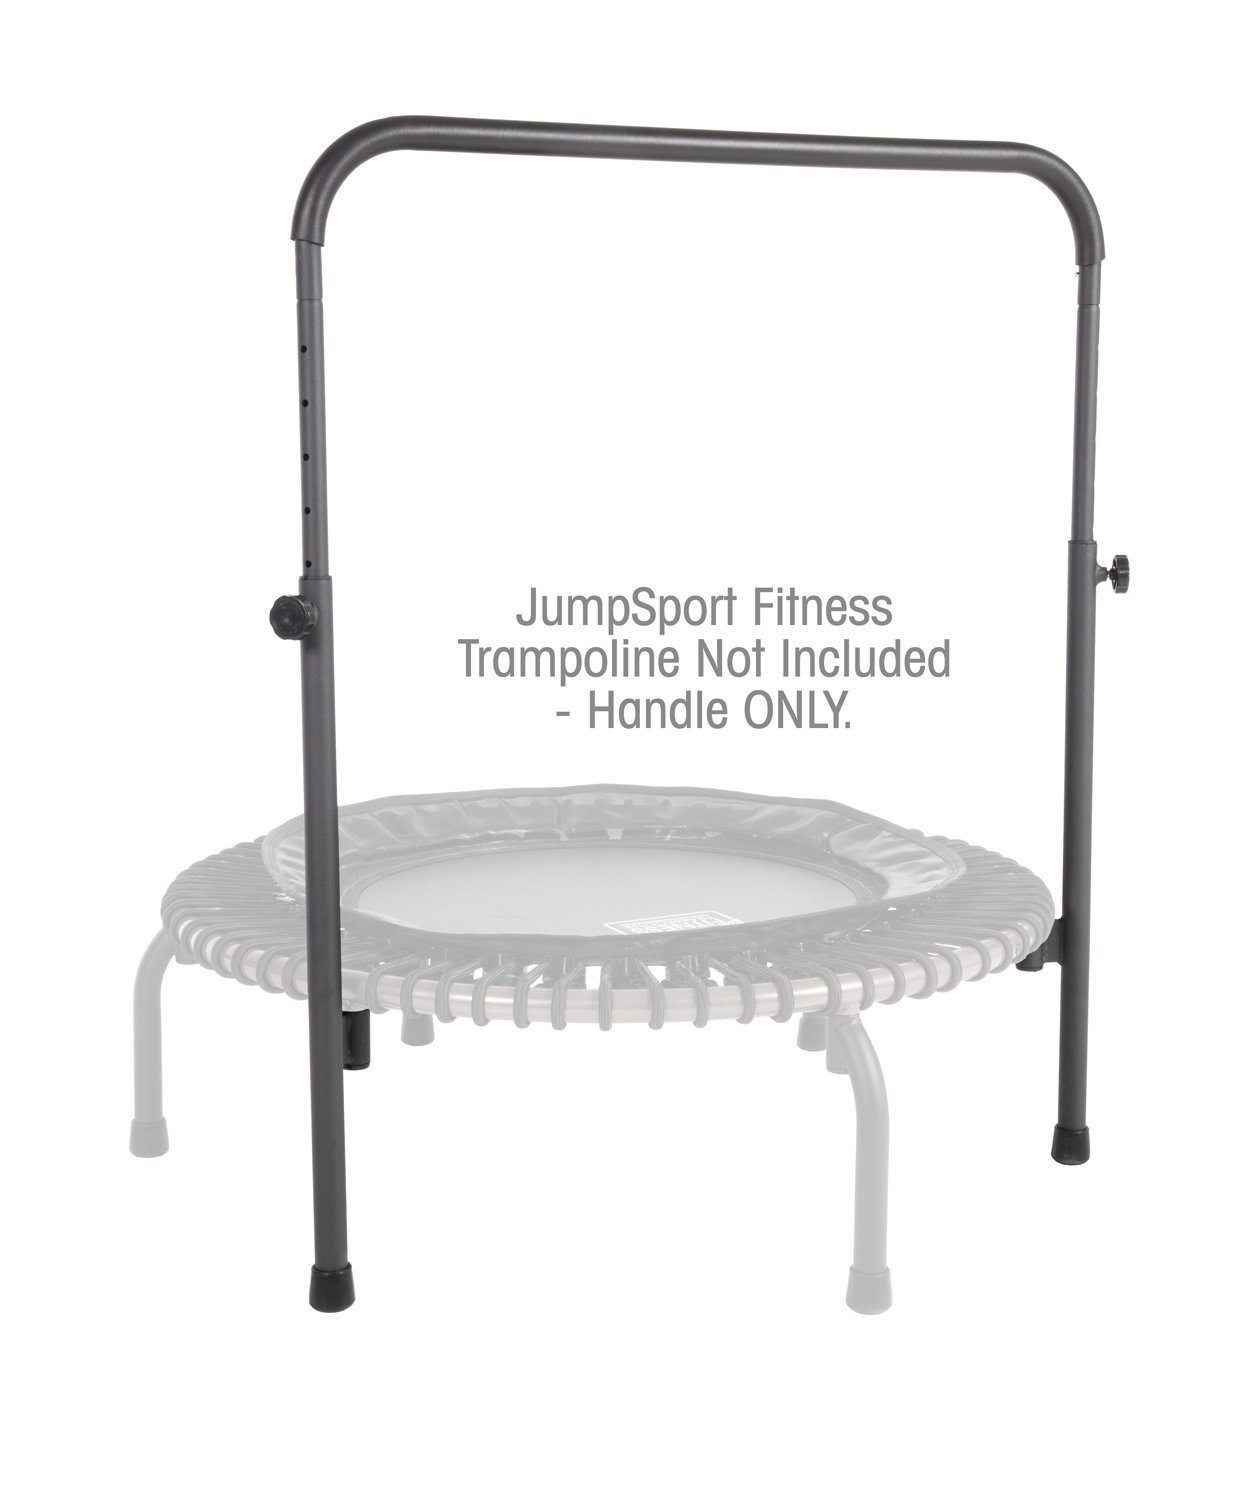 JumpSport Handle Bar Accessory For 44'' Arched Leg Fitness Trampolines | Fits Only 44'' Diameter JumpSport Rebounder | Trampoline Not Included